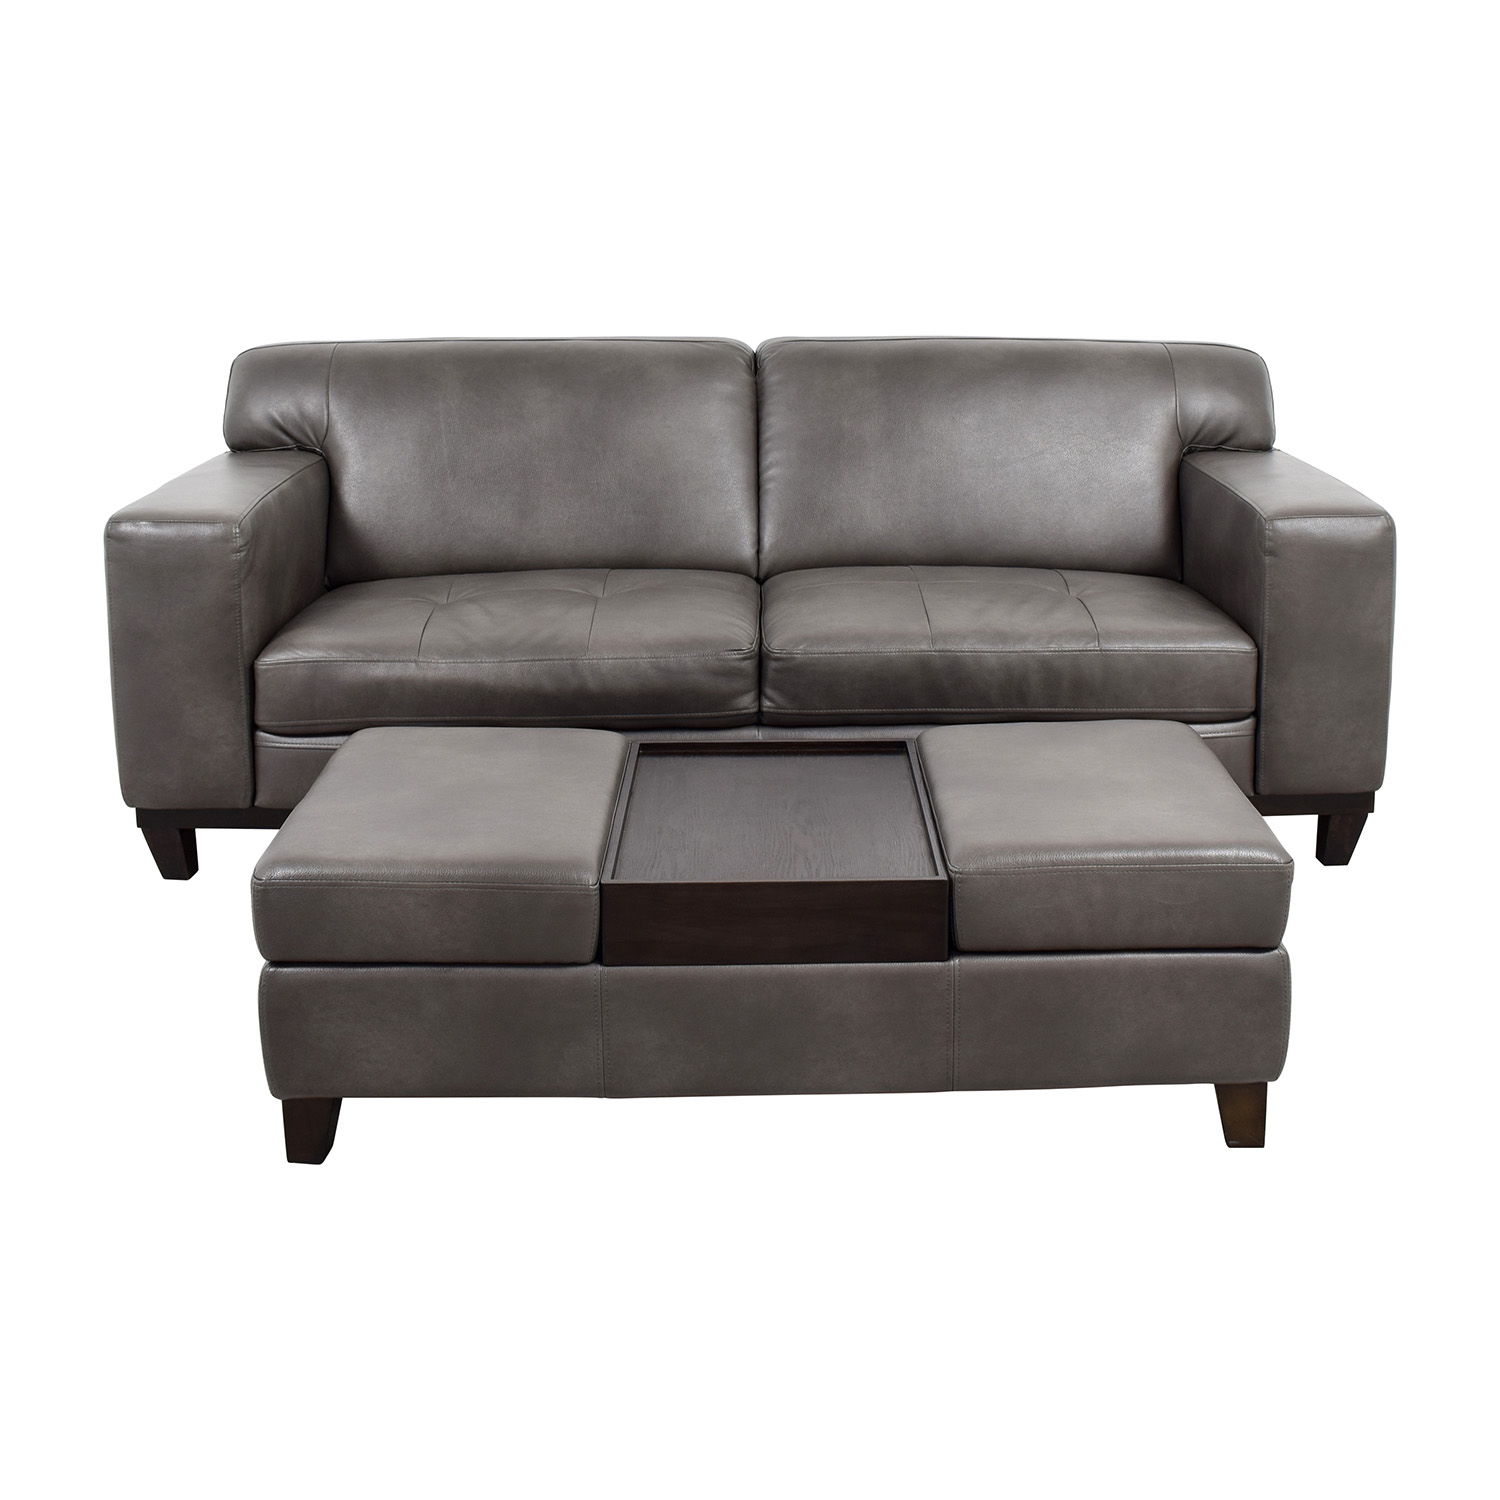 68% OFF - Raymour & Flanigan Raymour & Flanigan Grey Leather Couch with  Storage Ottoman / Sofas